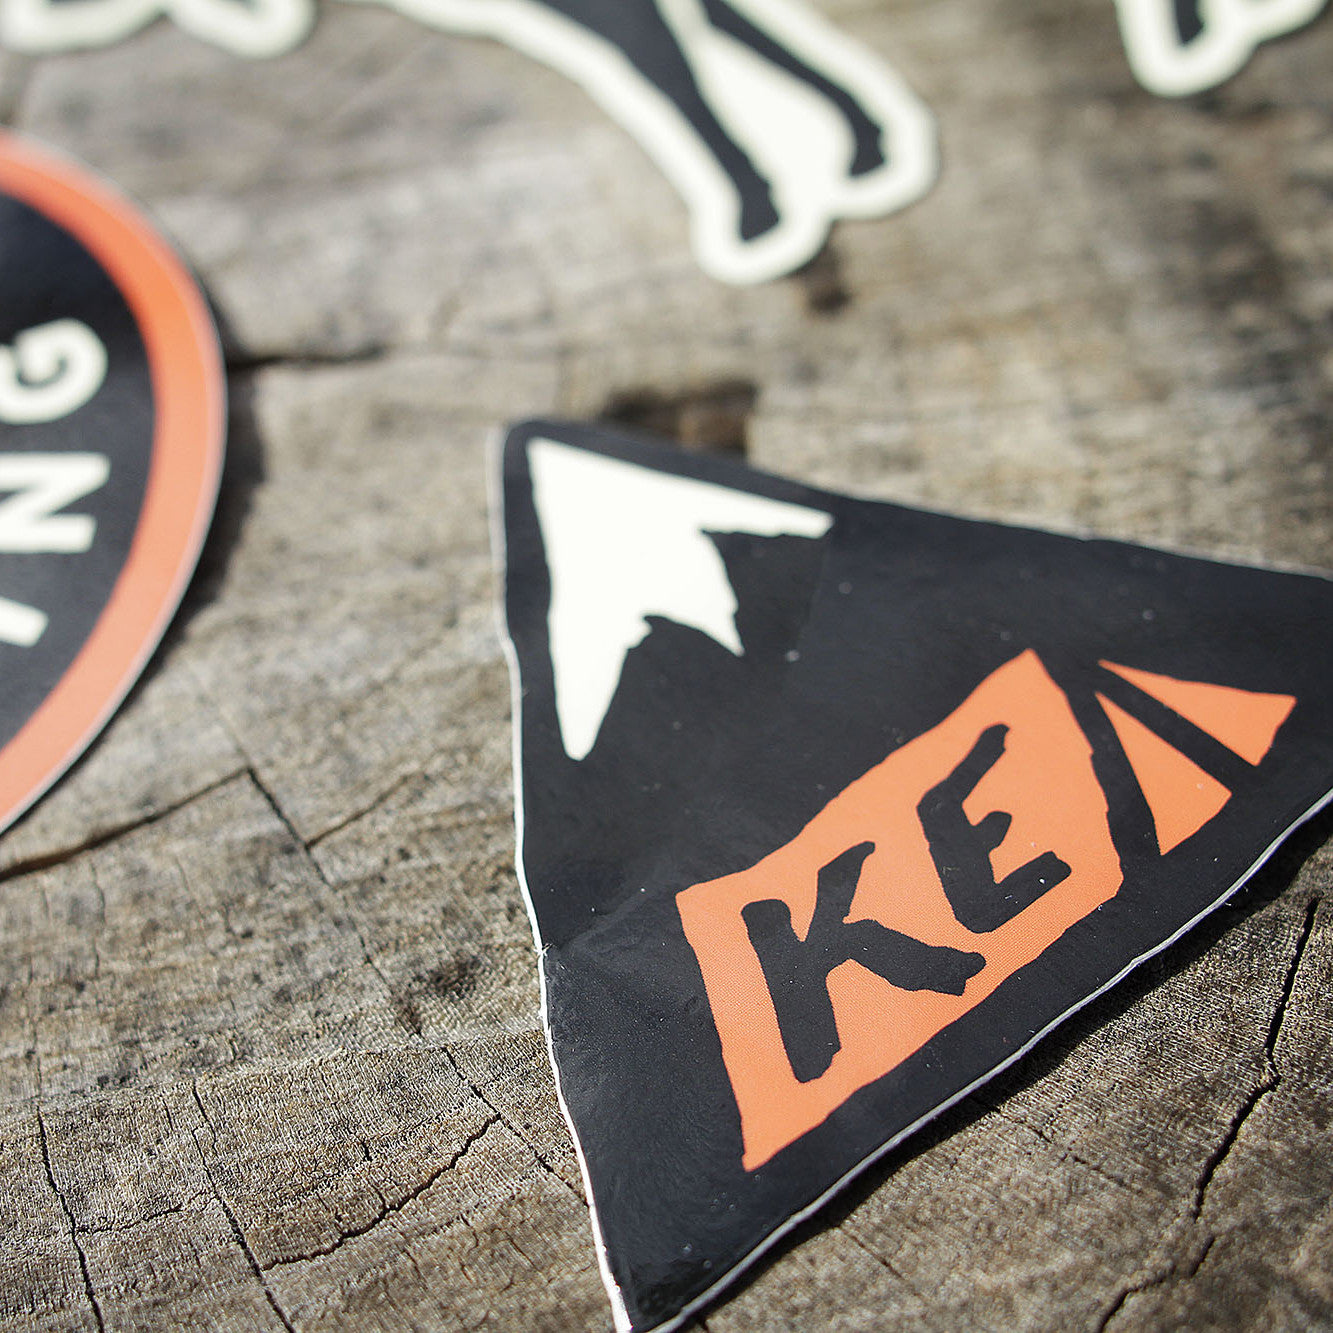 KE X Sam Larson Sticker Pack v2